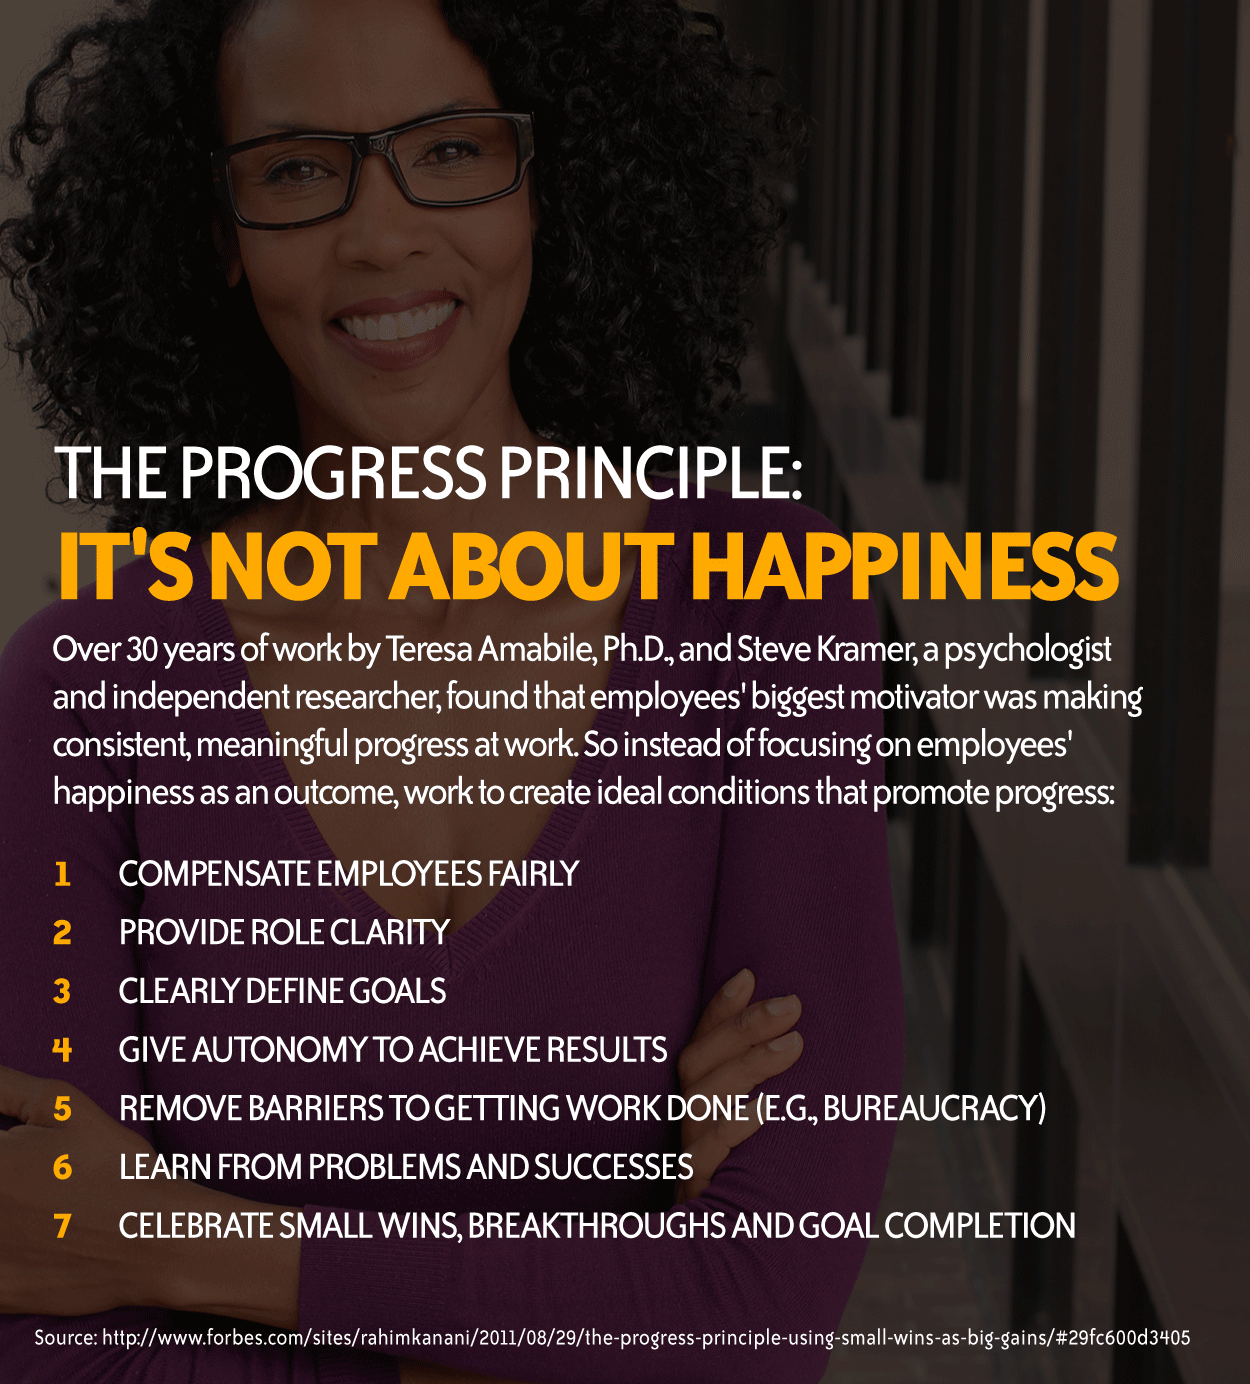 INFOGRAPHIC: The Progress Principle: It's Not About Happiness